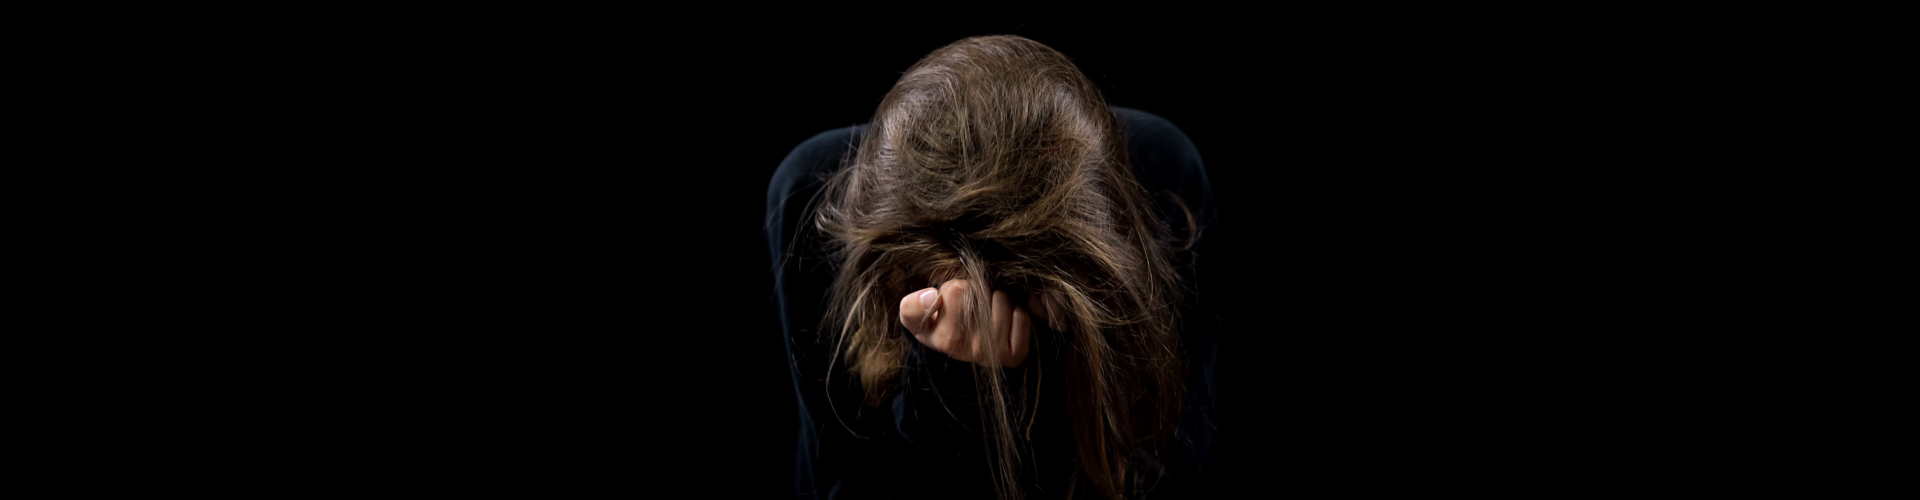 adult woman crying looking down